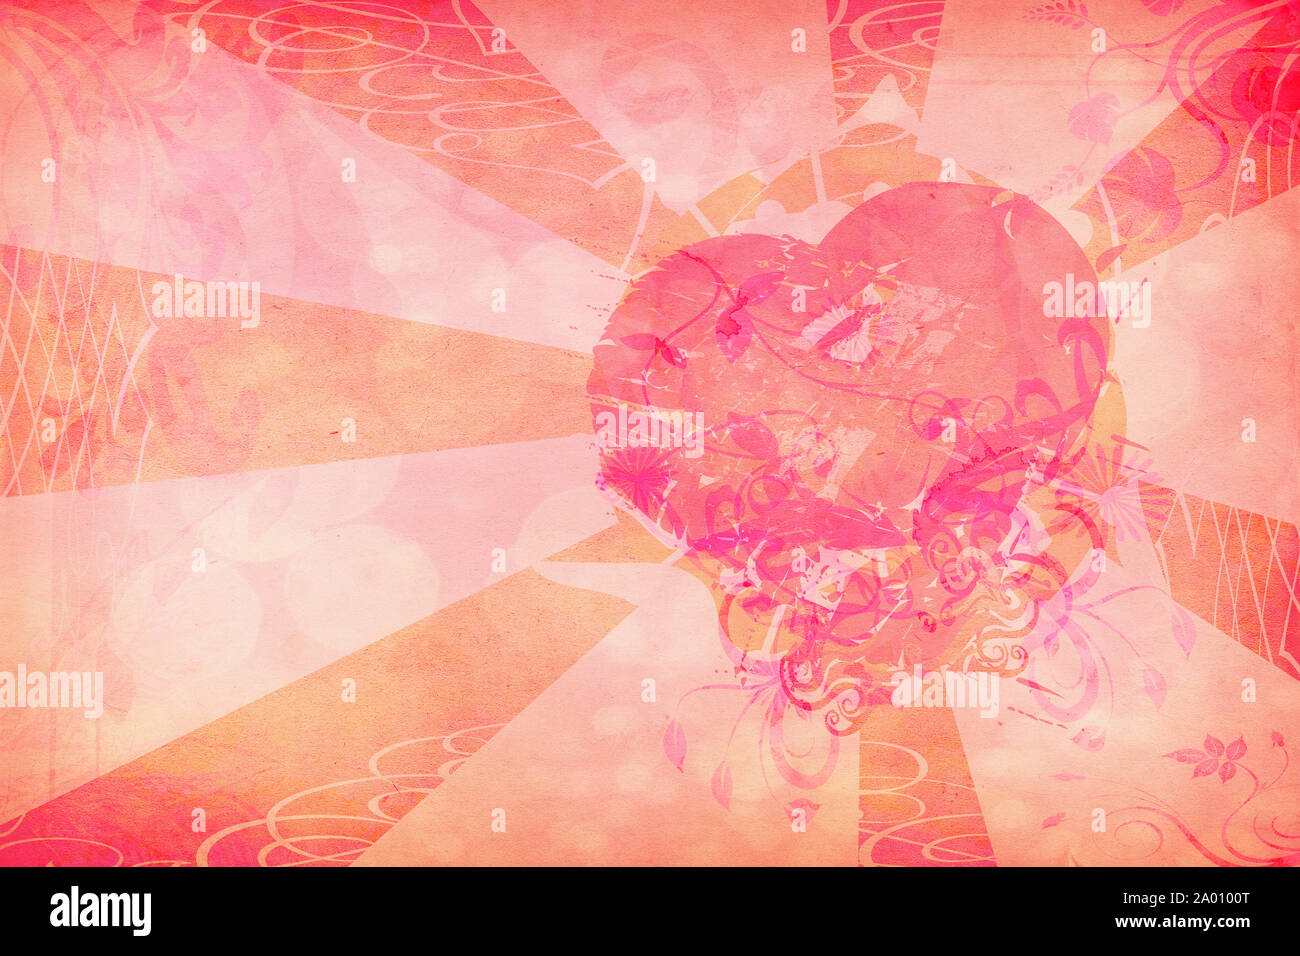 Abstract grunge heart shape on paper texture background. Stock Photo